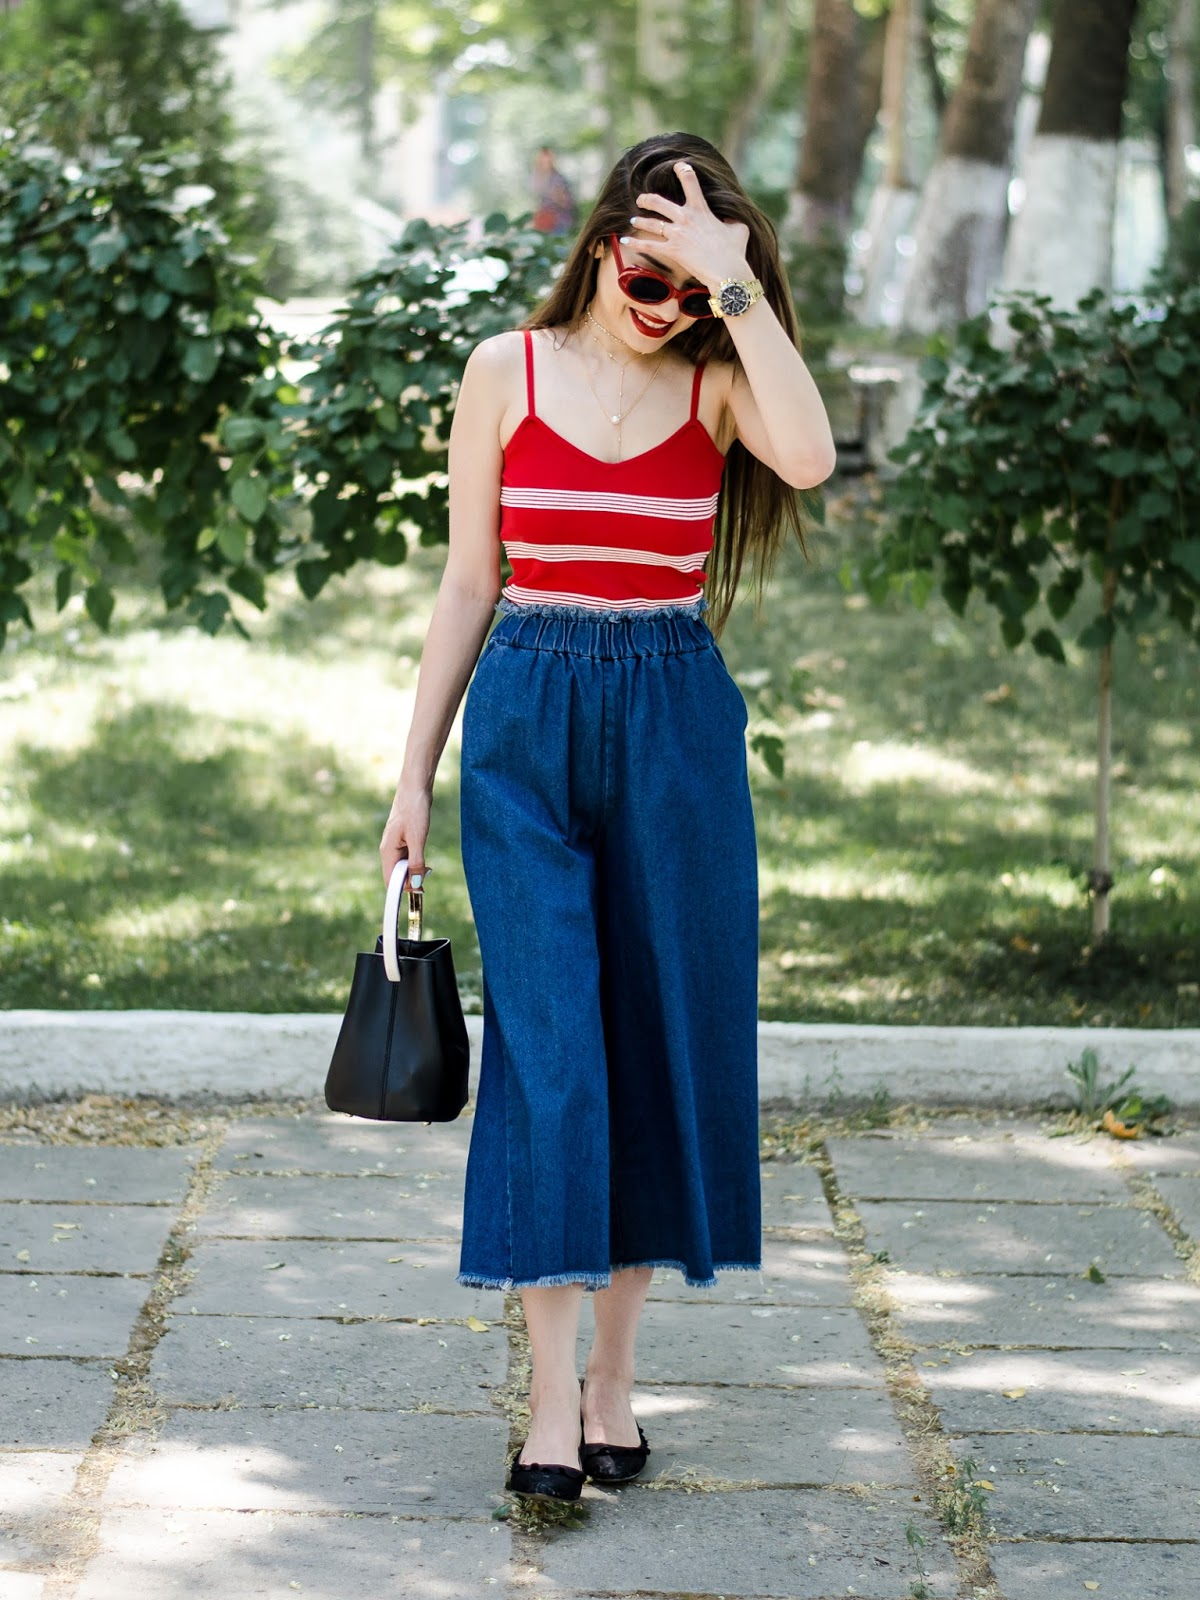 diyorasnotes diyora beta fashion blogger style outfitoftheday lookoftheday red top denim jeans wide leg jeans culottes hm shoes red lips style